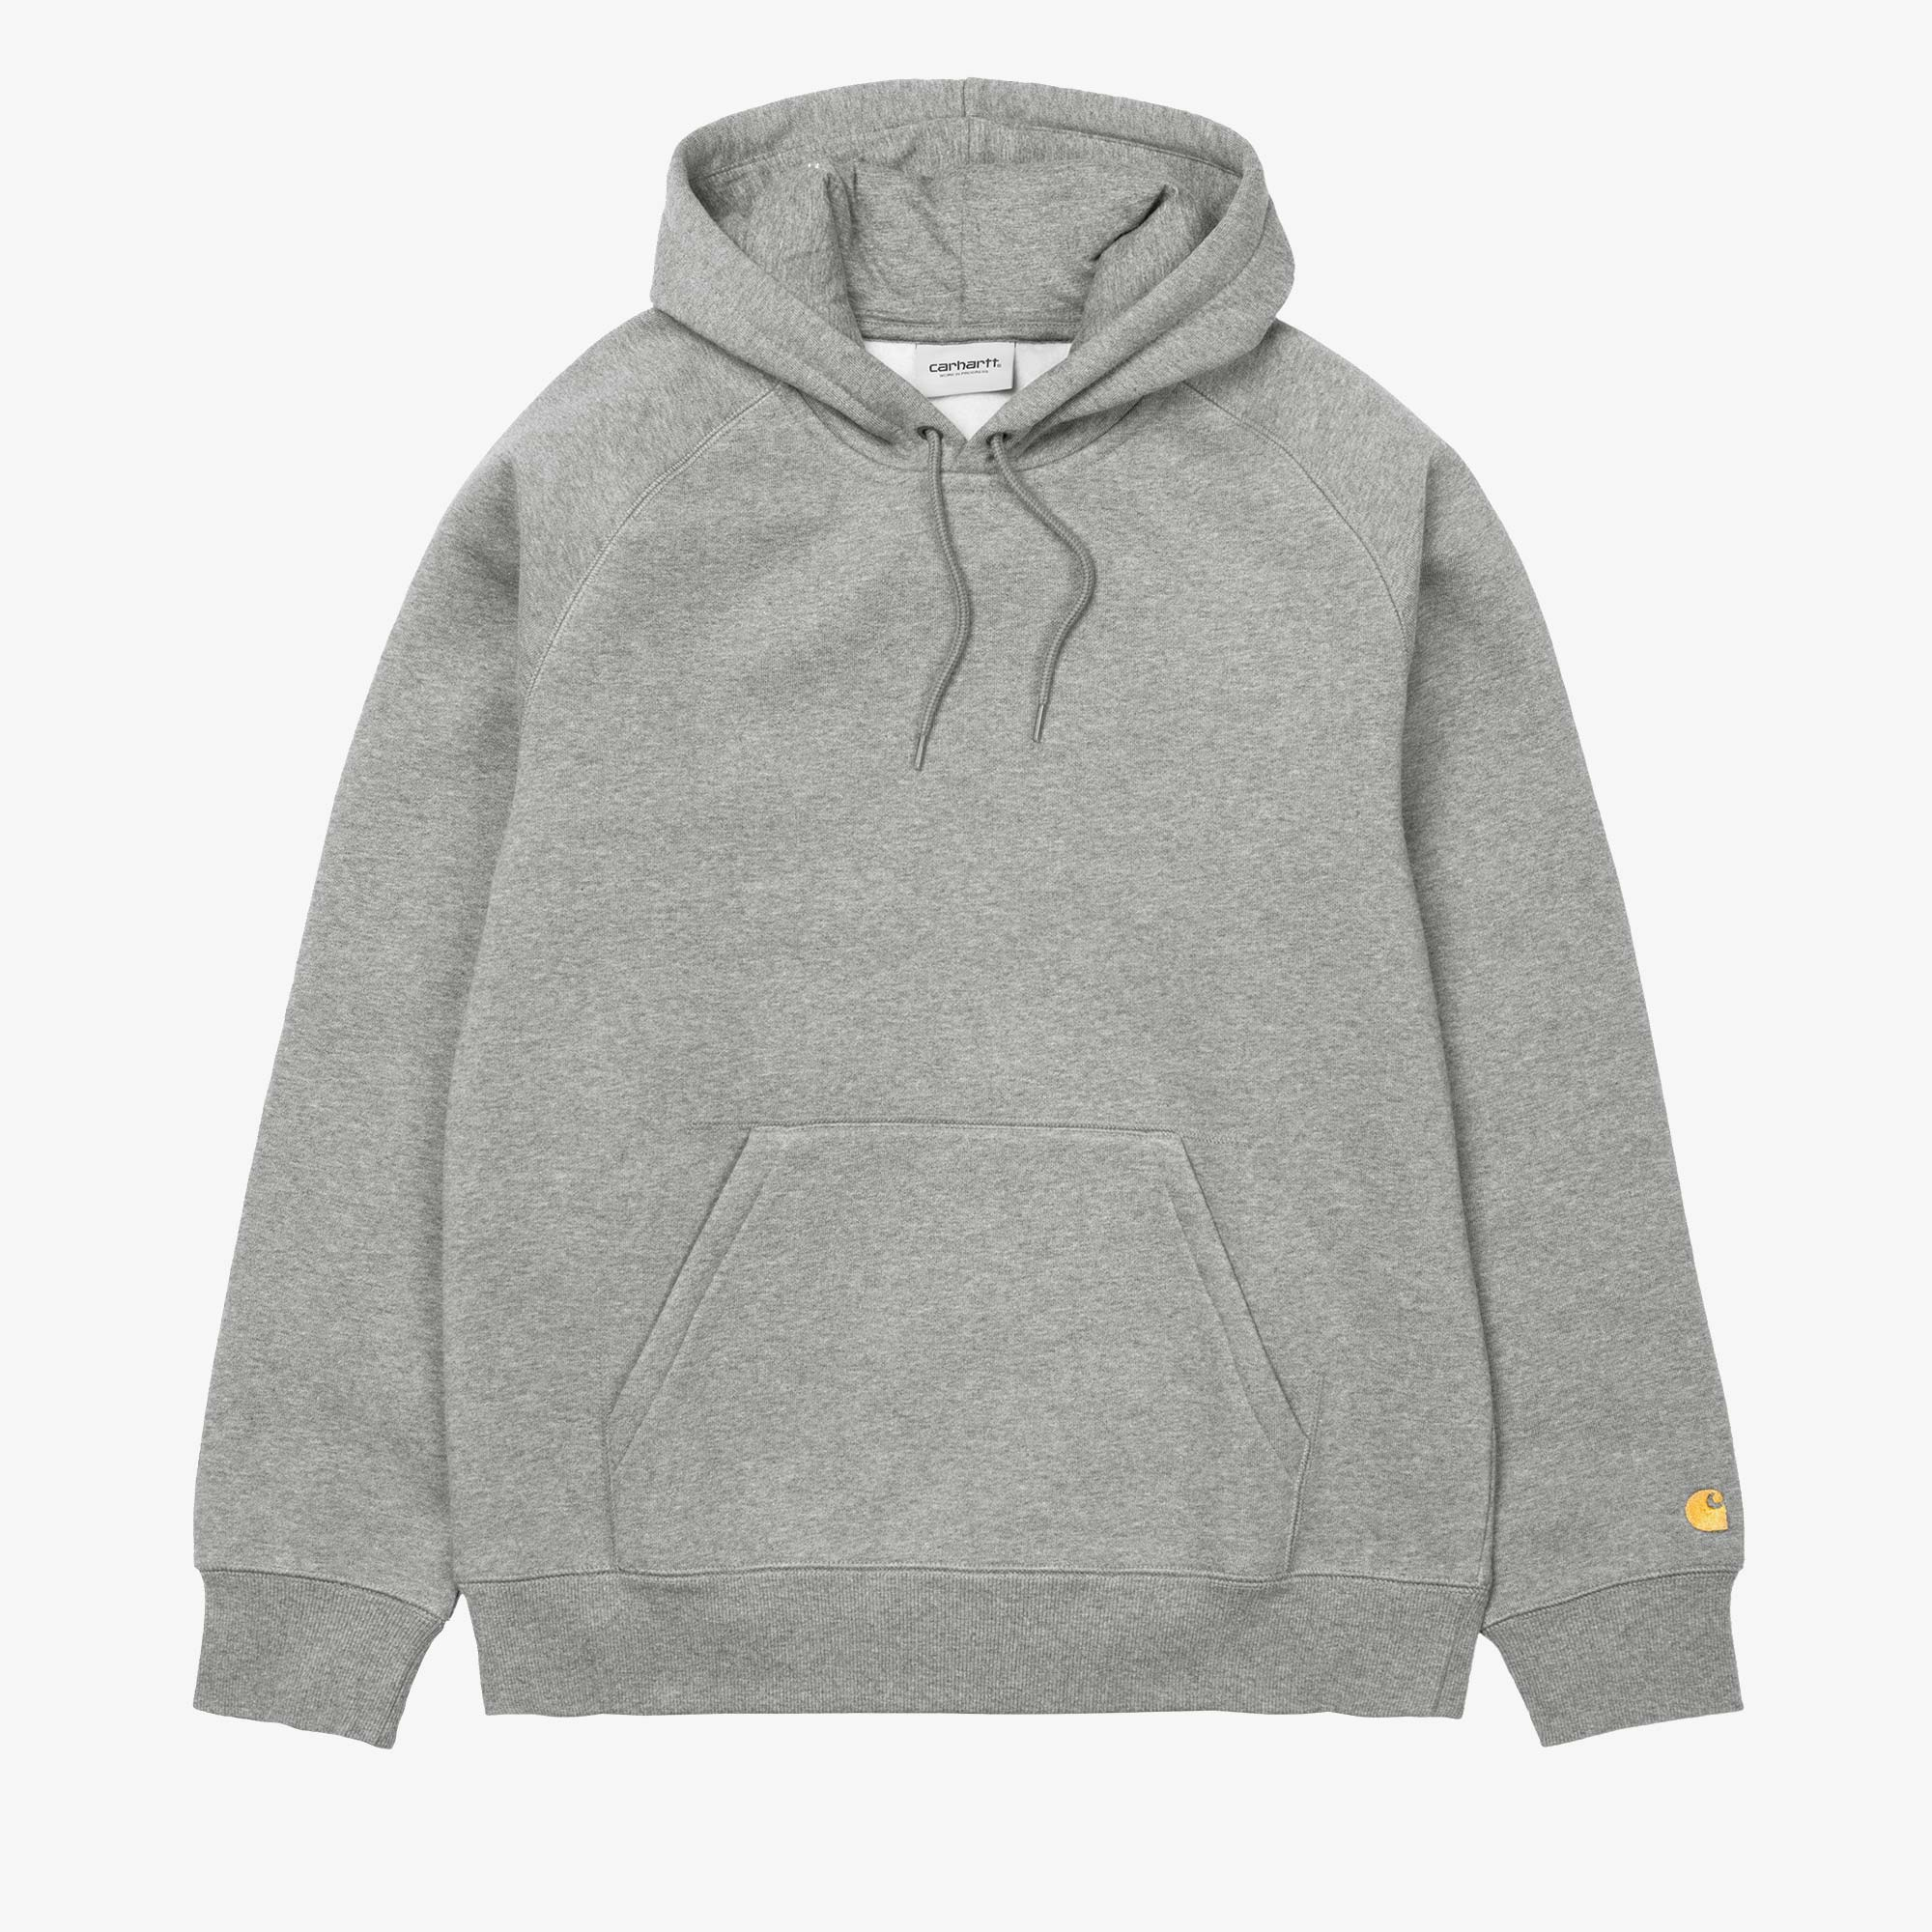 Carhartt WIP Hooded Chase Sweat - Grey Heather / Gold 1